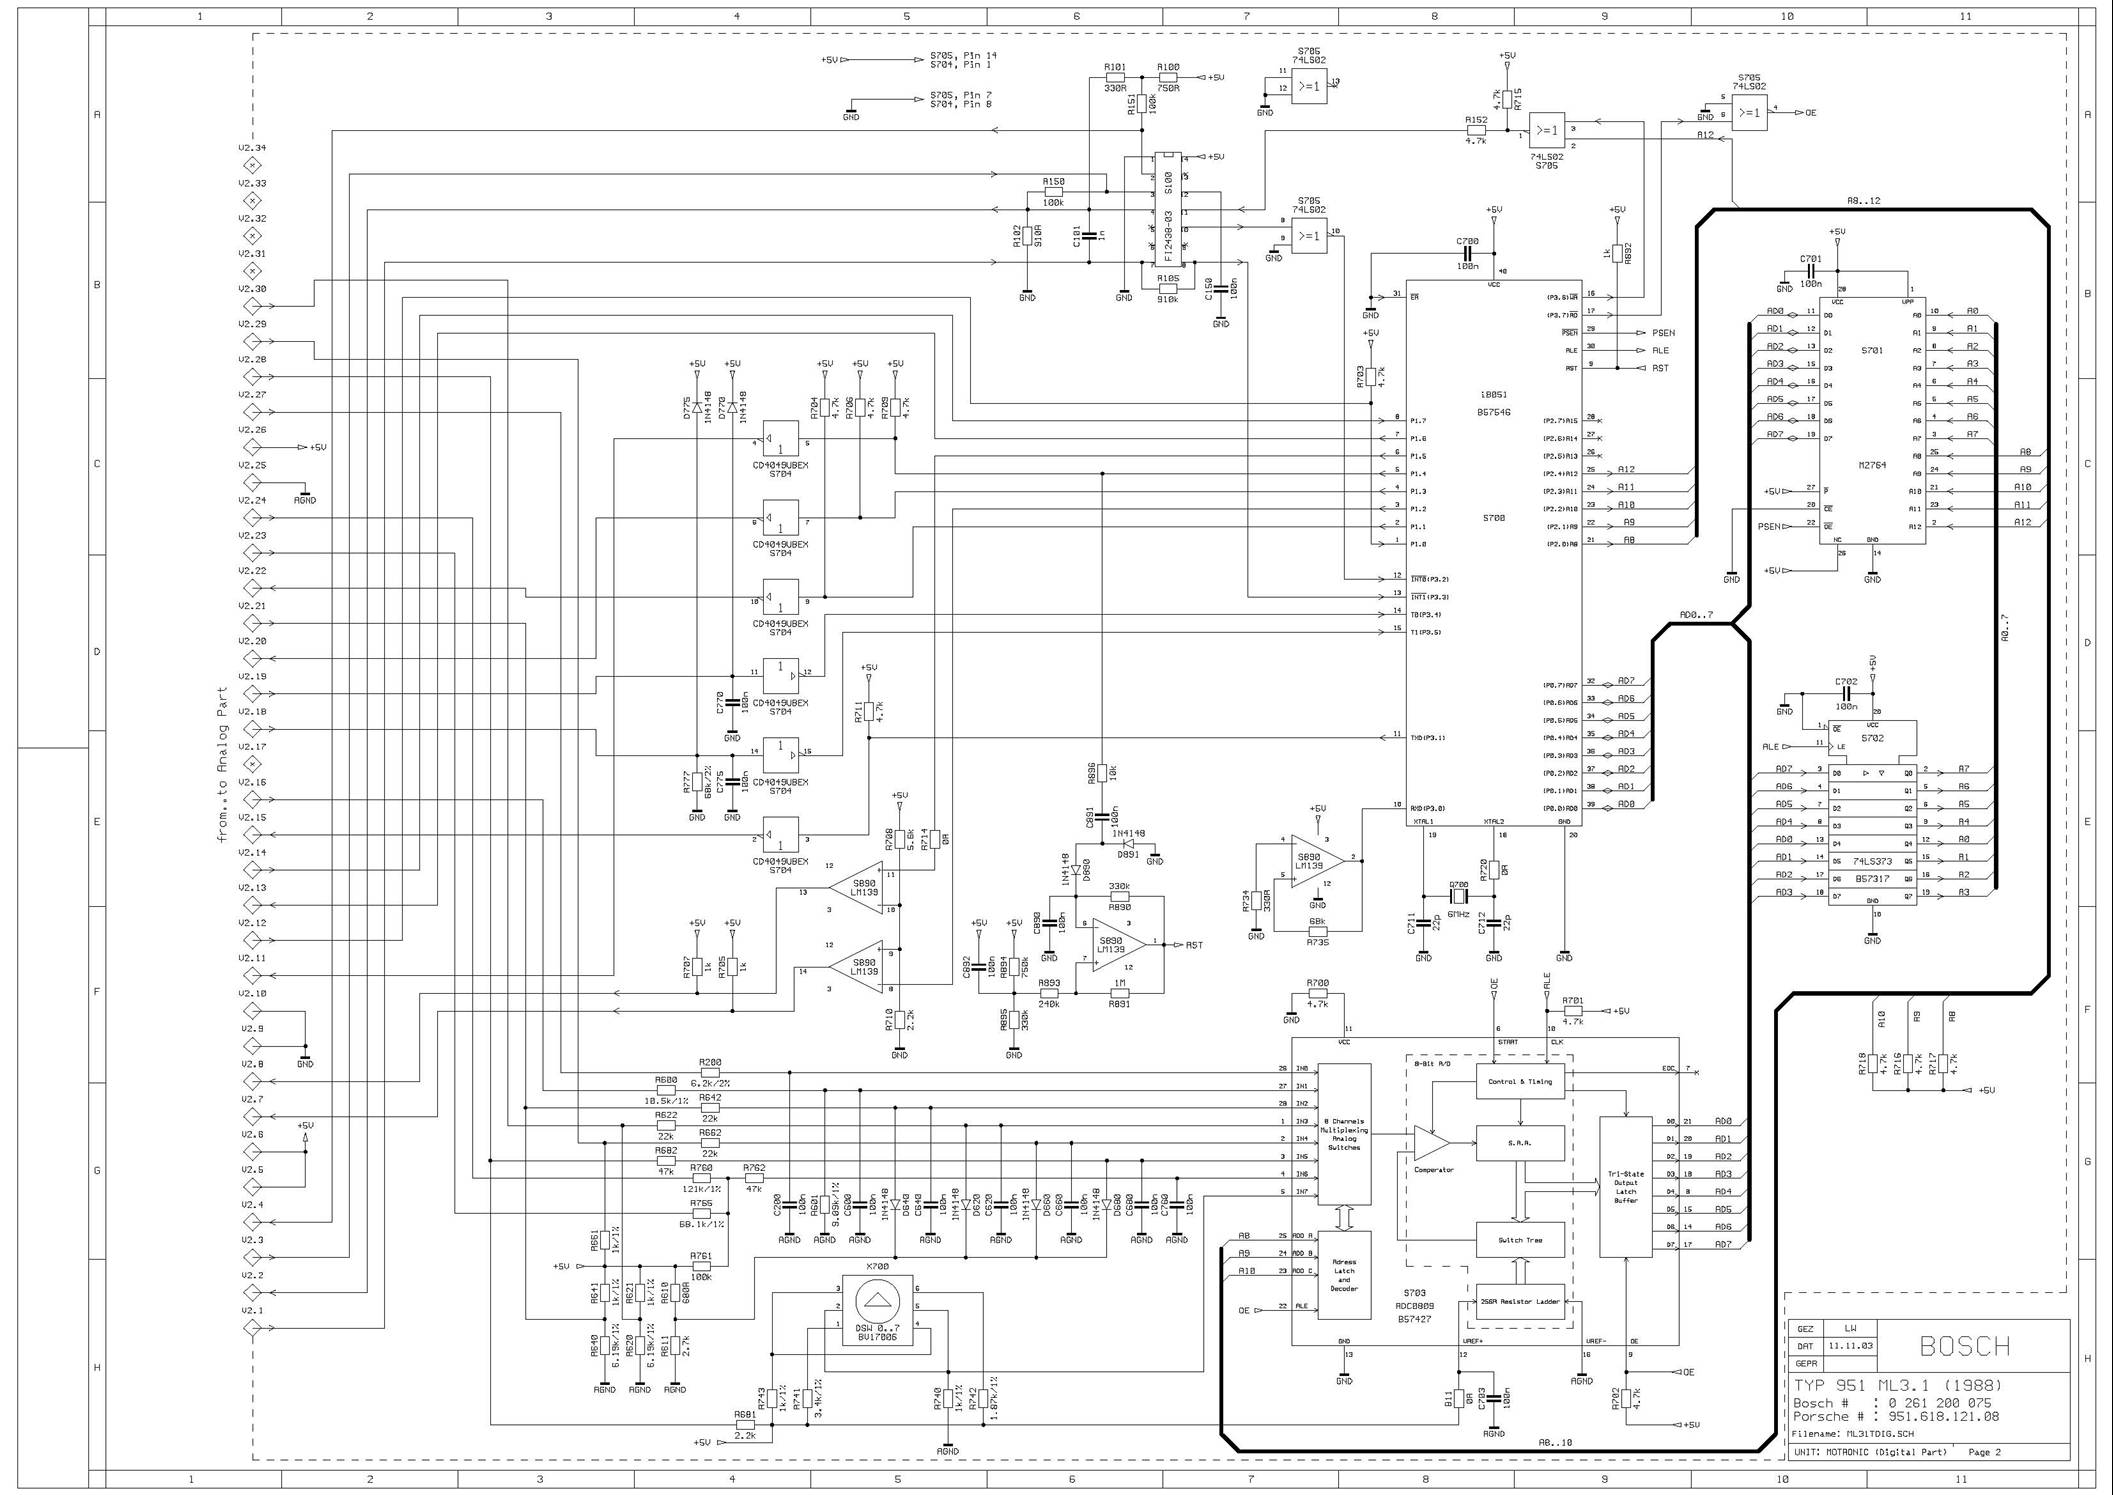 dme wiring diagram 944 turbo rh clarks garage com 1988 porsche 944 wiring diagram porsche 944 dme relay wiring diagram